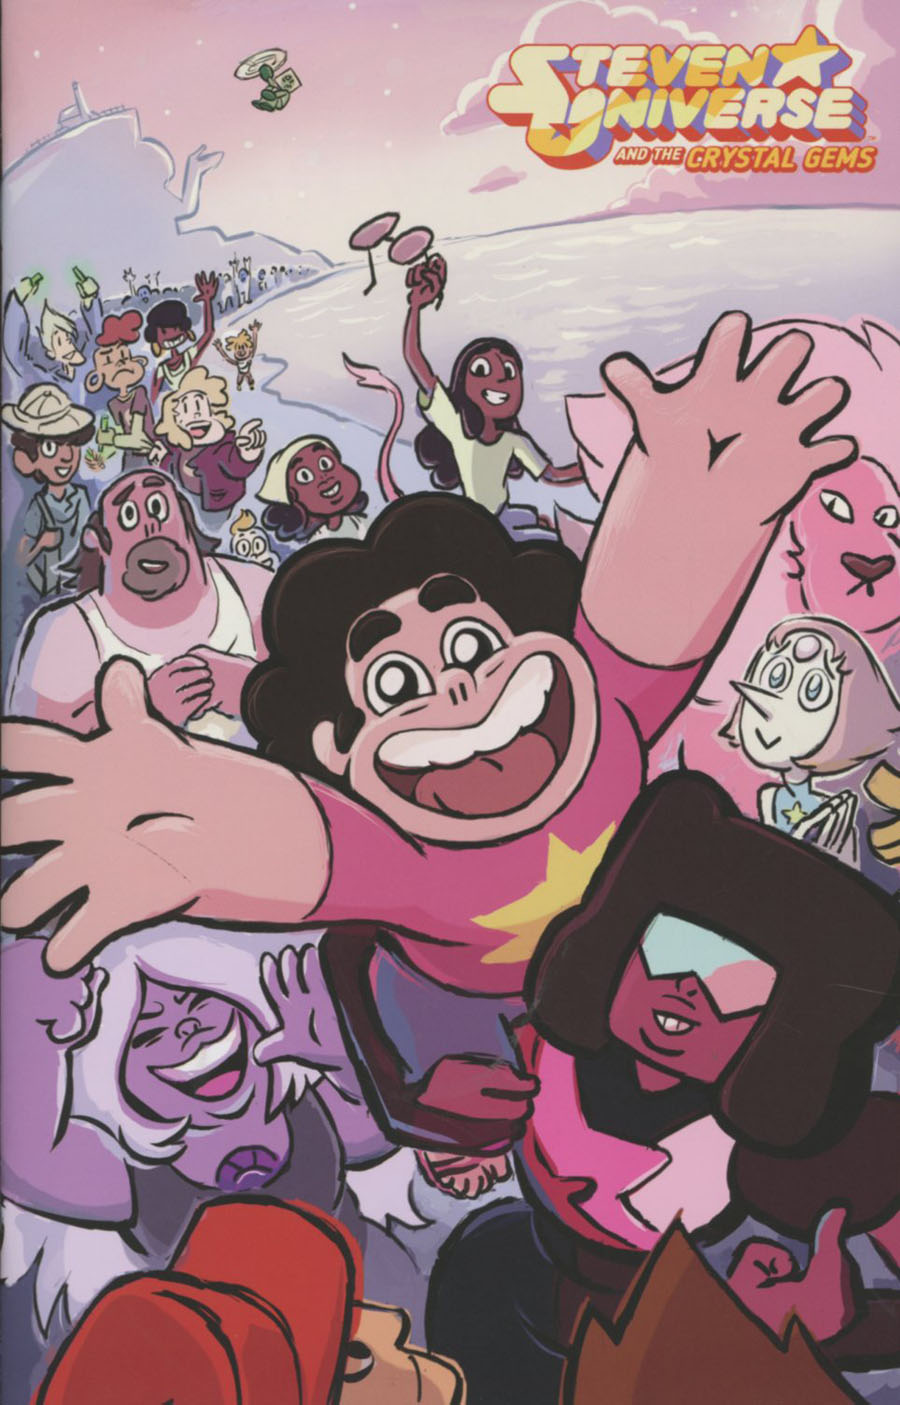 Steven Universe And The Crystal Gems #4 Cover C Incentive Raven Molisee Virgin Variant Cover